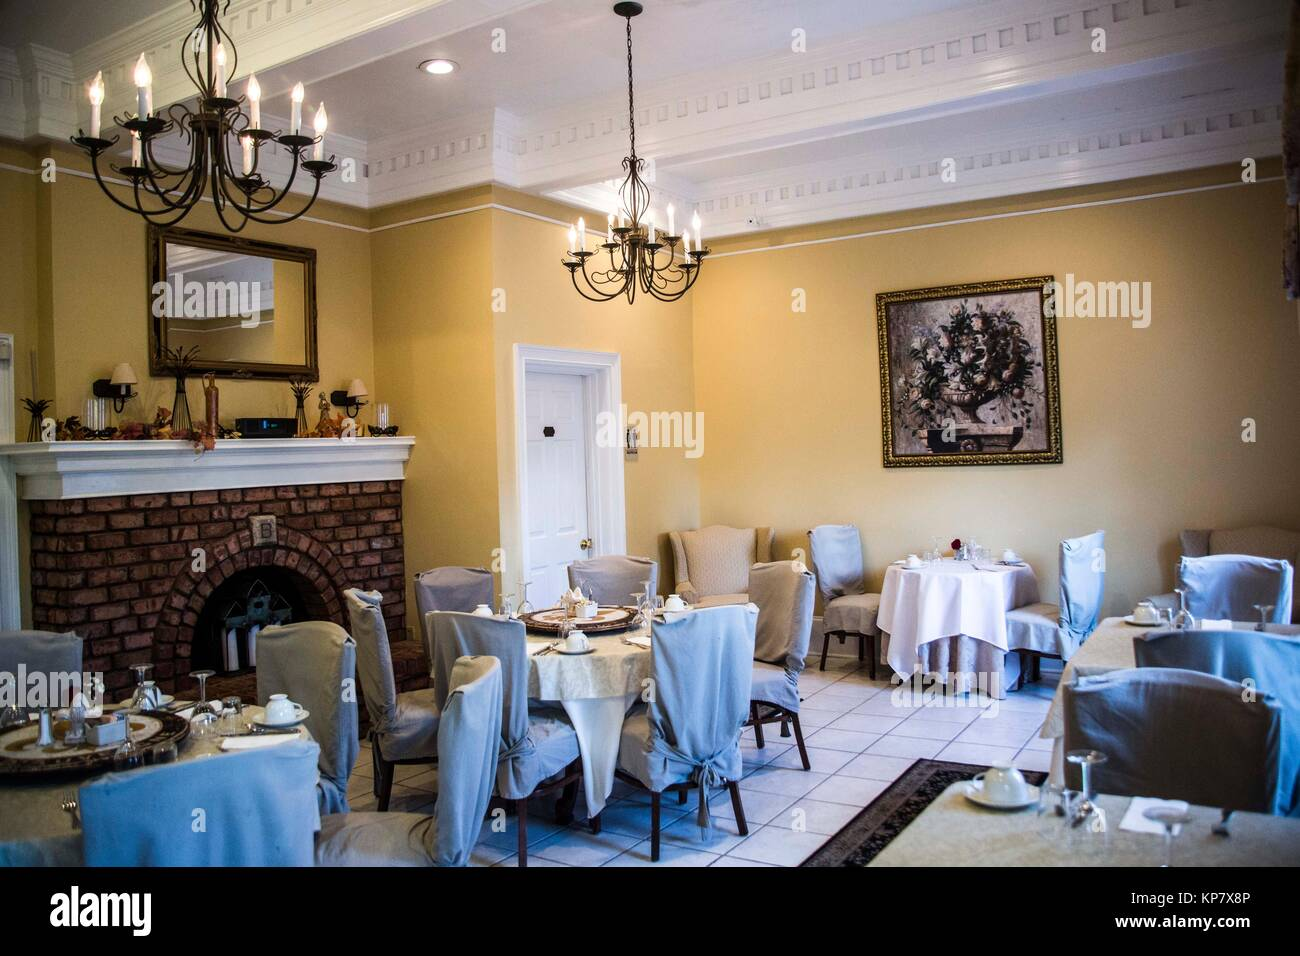 Beautiful Dining Room With Fireplace Inside A Bed And Breakfast Stock Photo Alamy